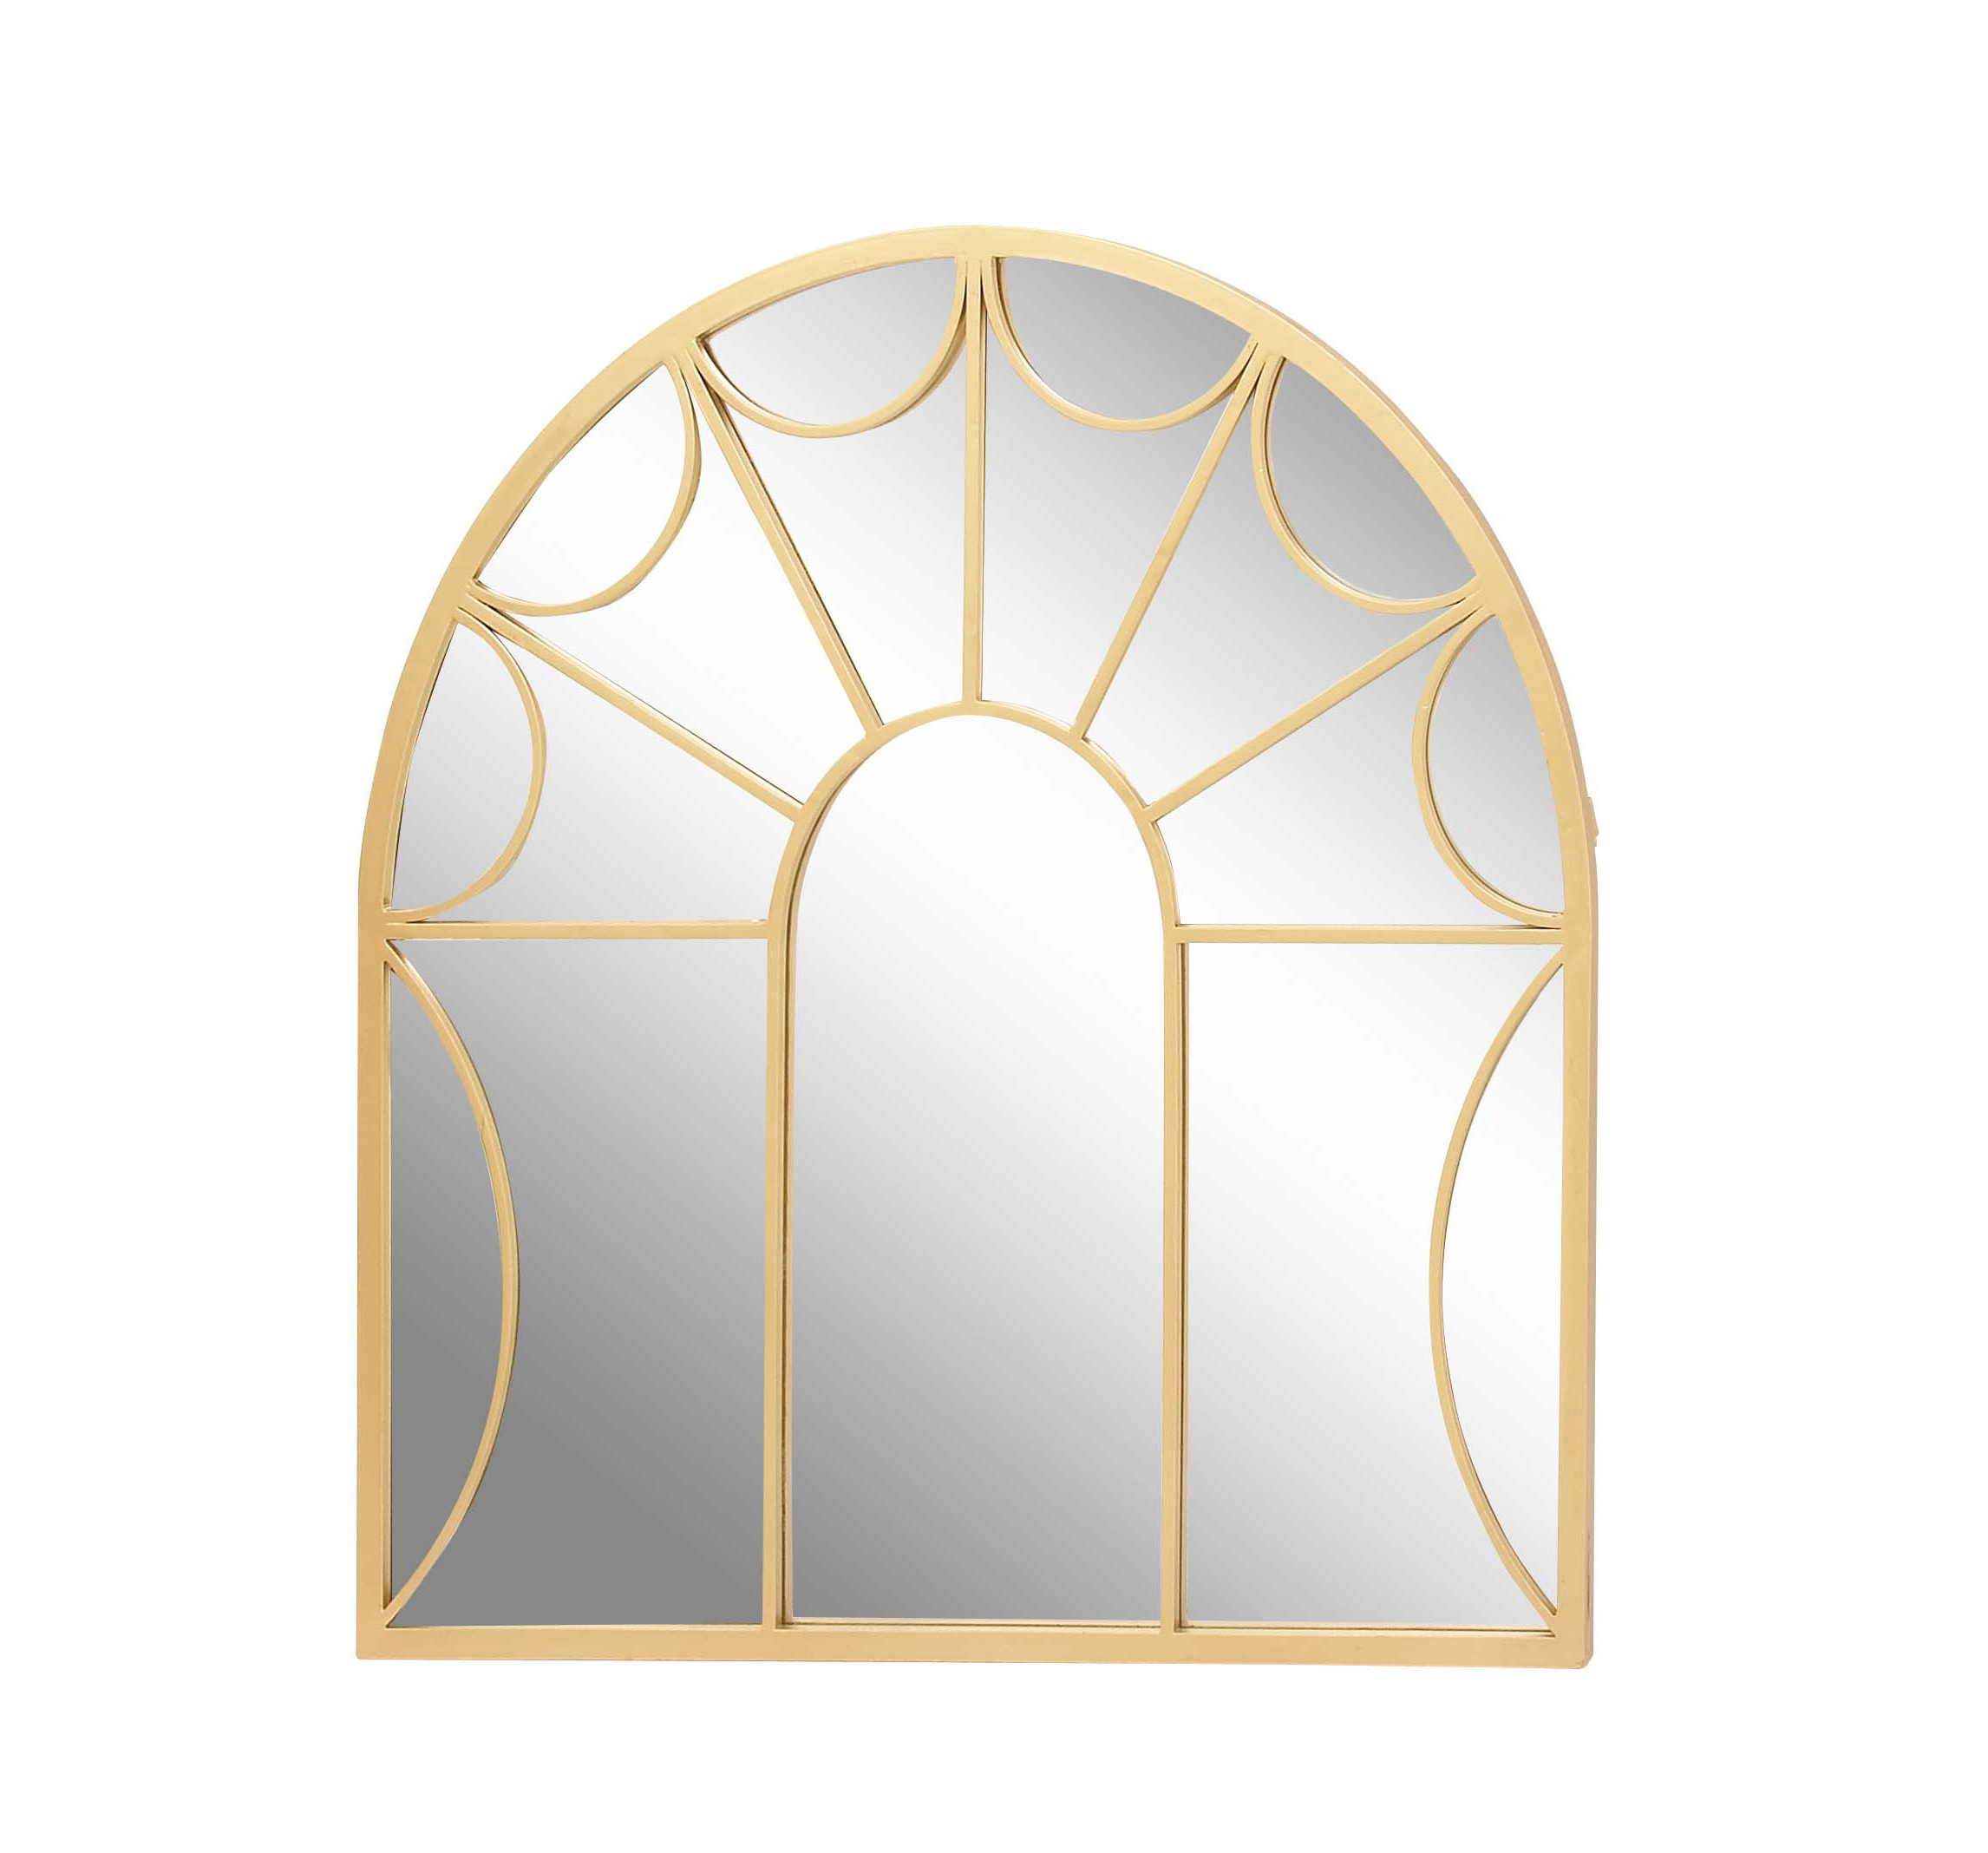 2019 Gold Arch Wall Mirrors With Decmode Modern 35 Inch Gold Metal Arched Window Pane Wall Mirror, Gold (View 20 of 20)